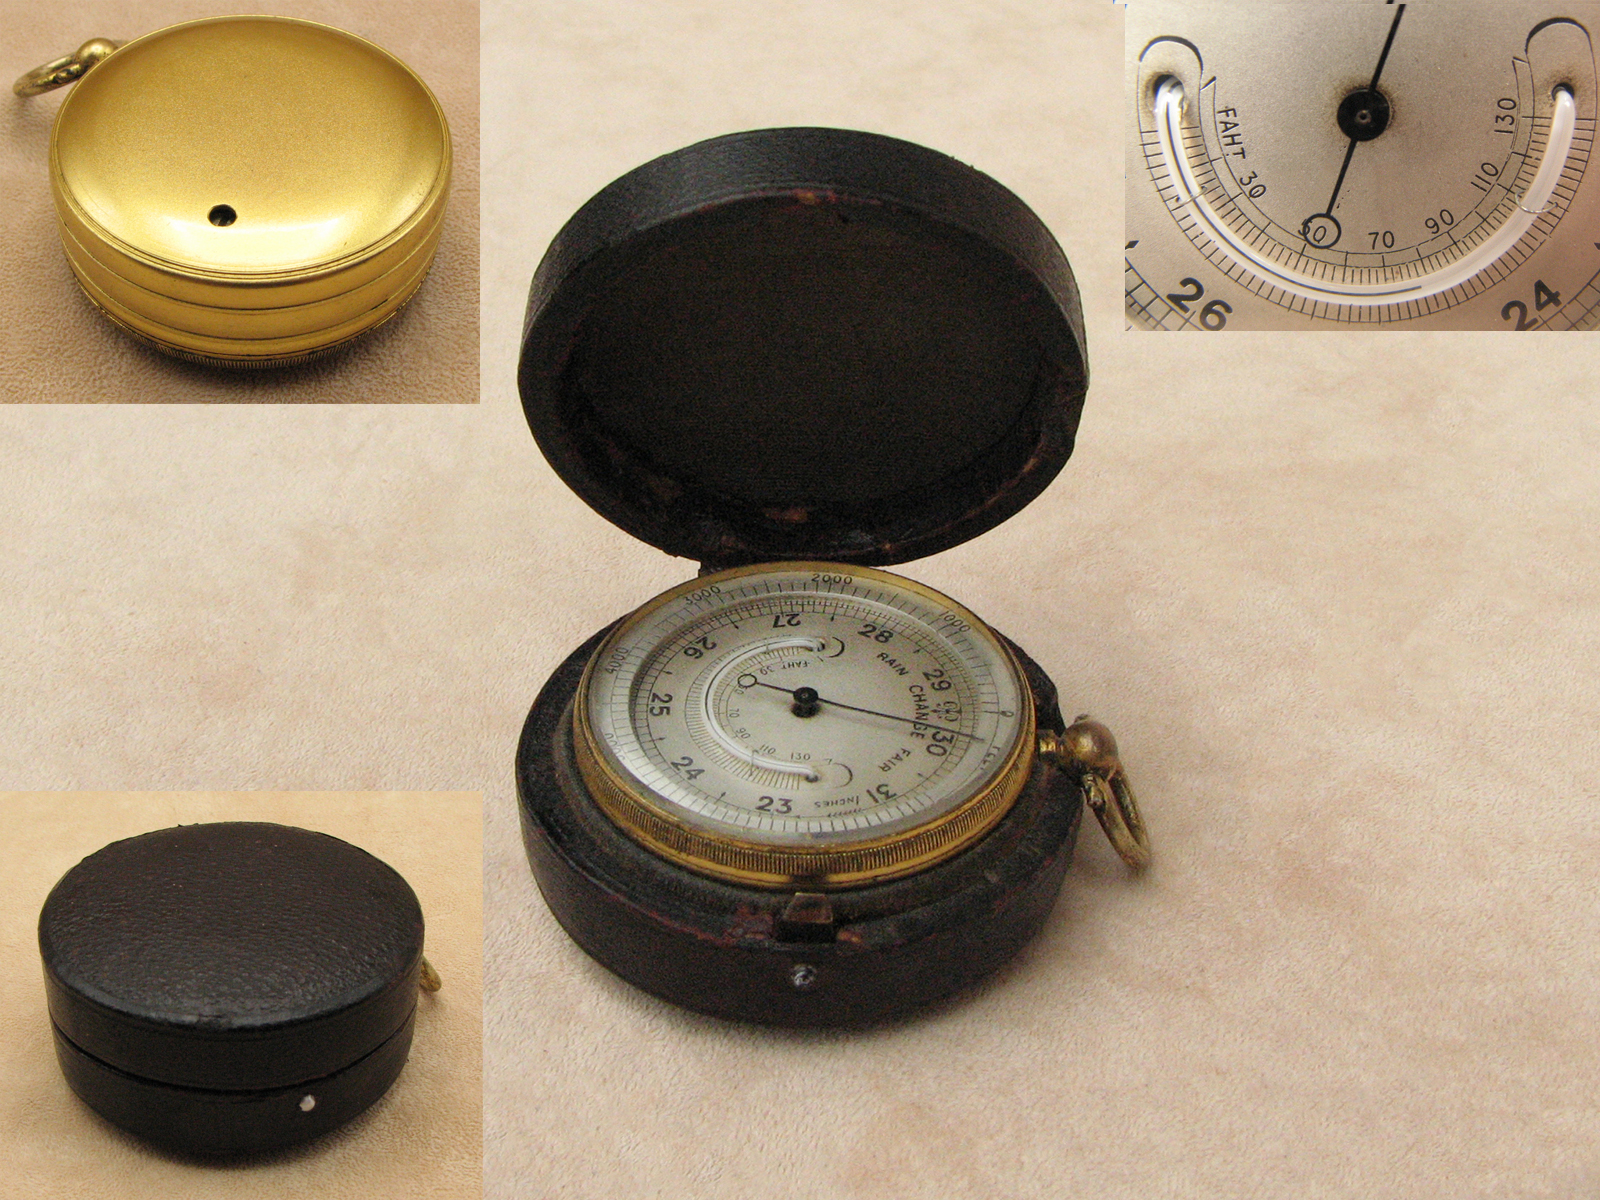 19th Century pocket barometer with curved thermometer in case